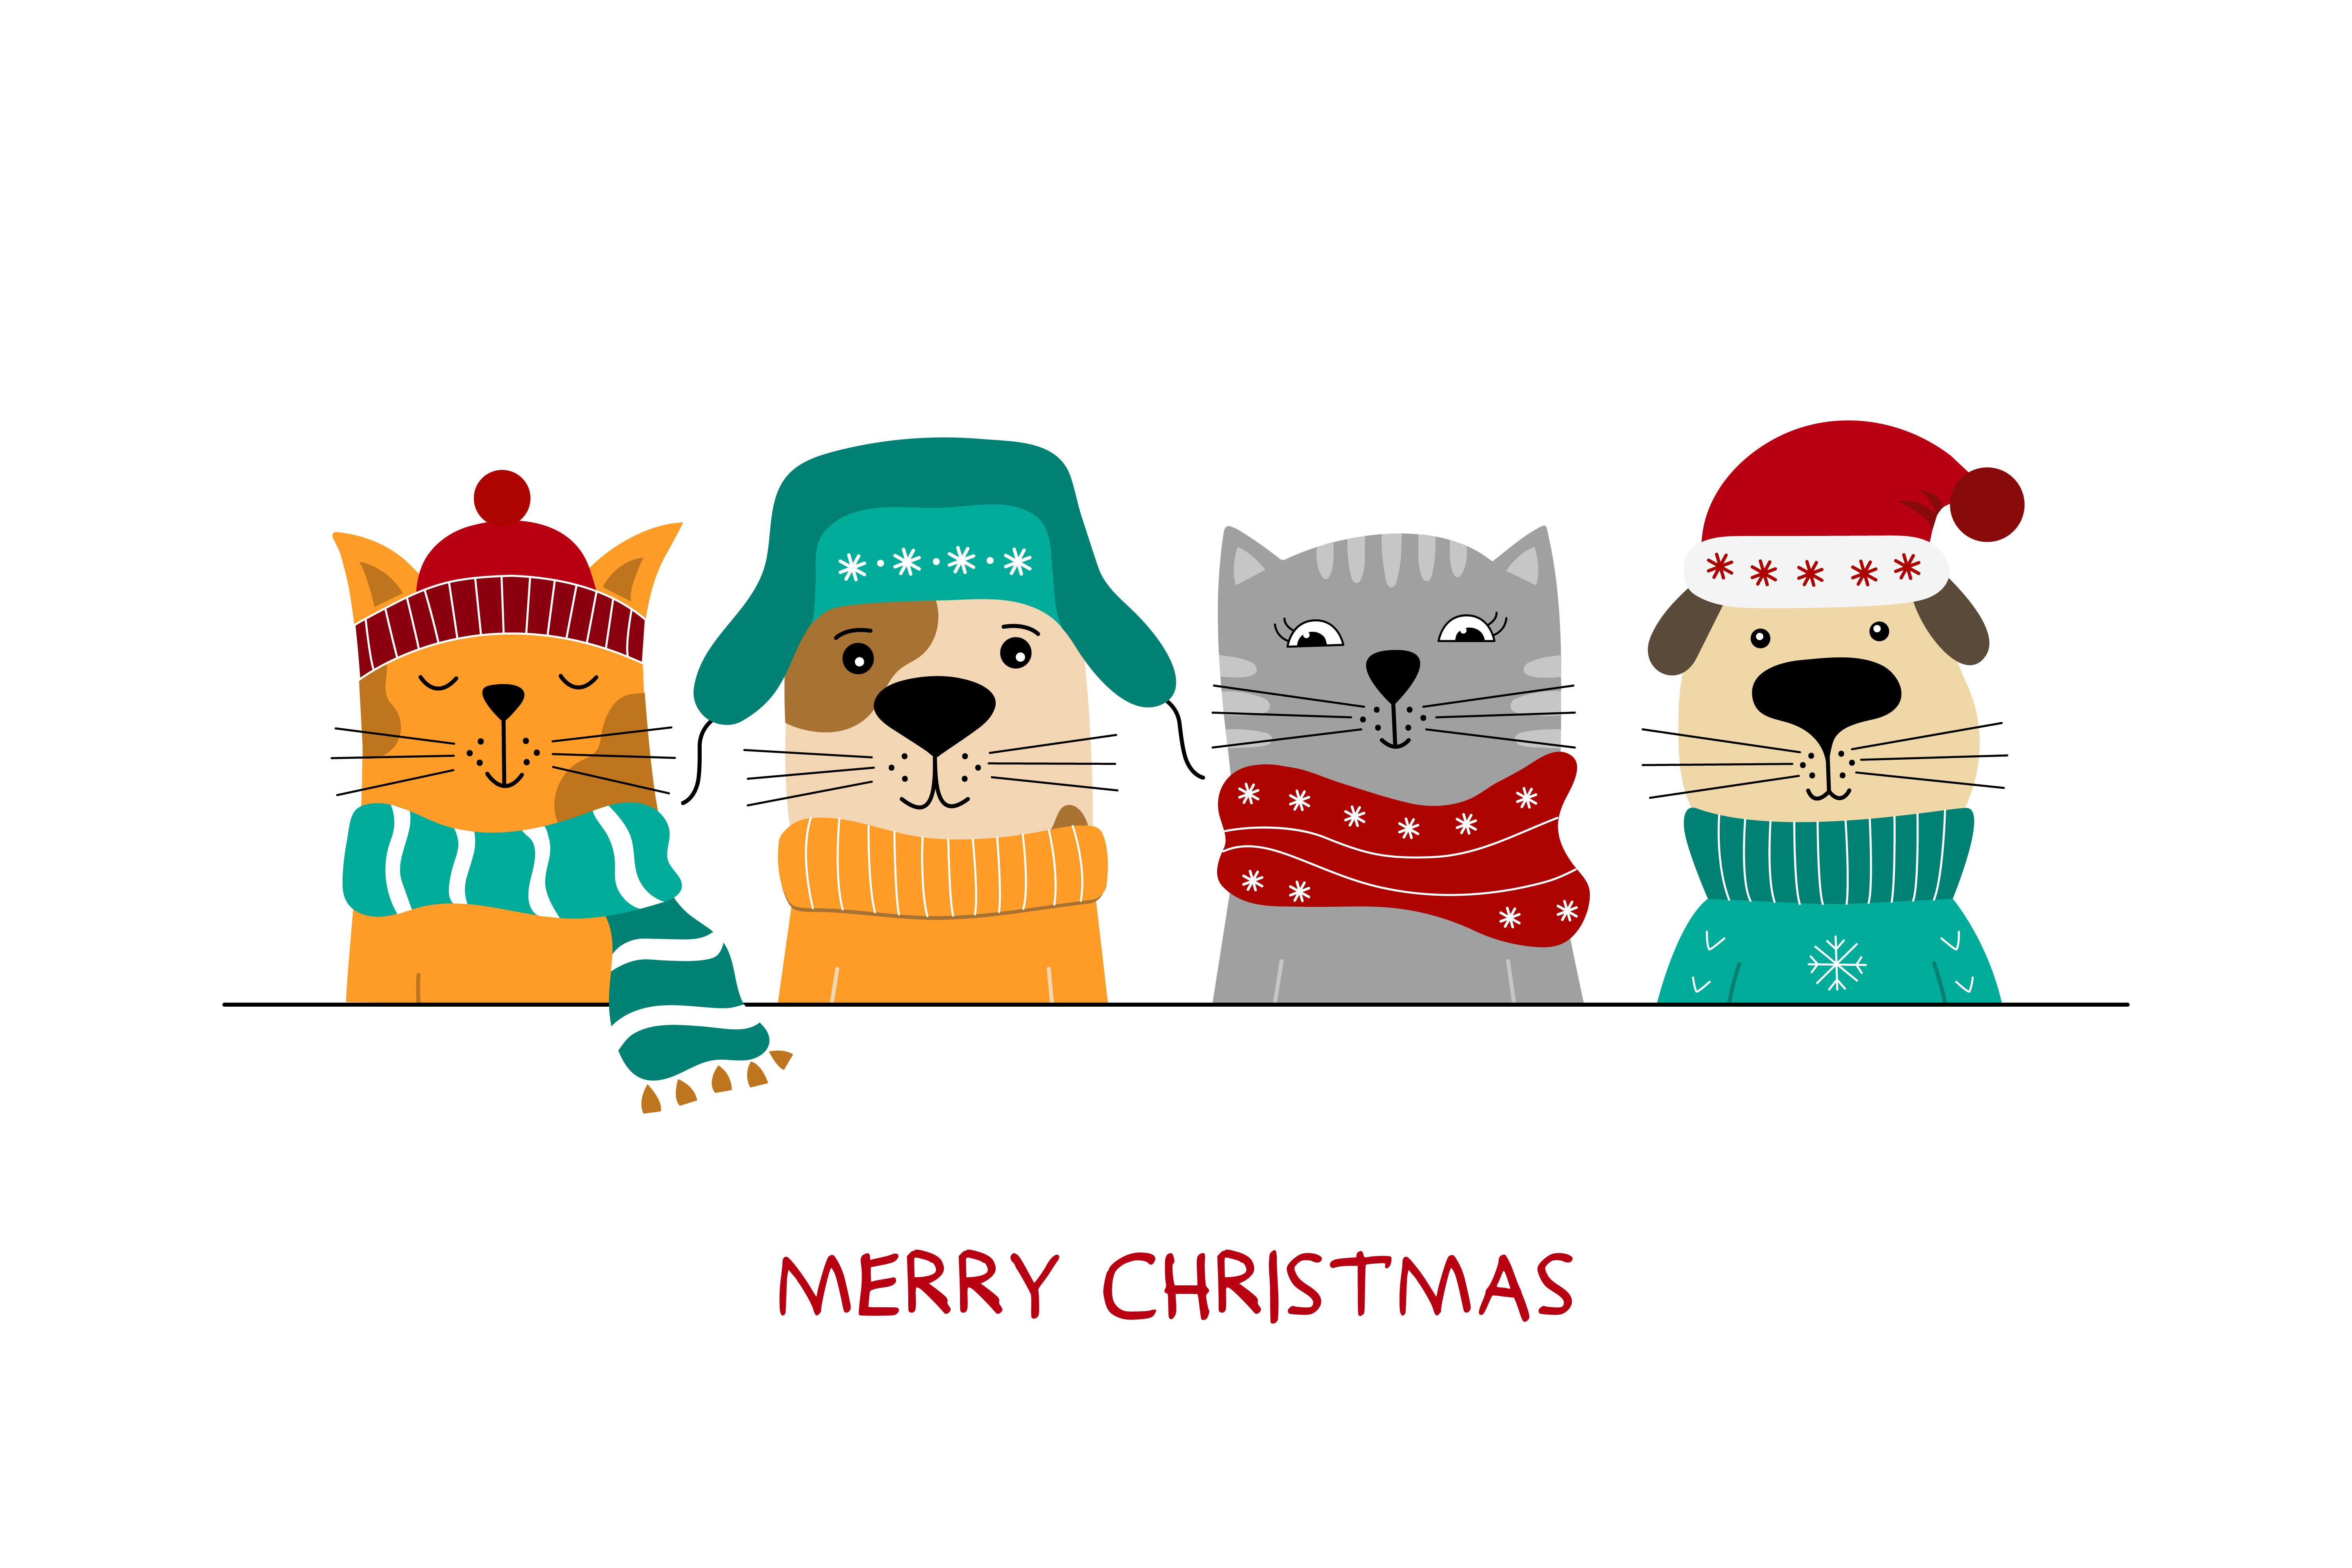 Merry Christmas illustration of cute cats and funny dogs